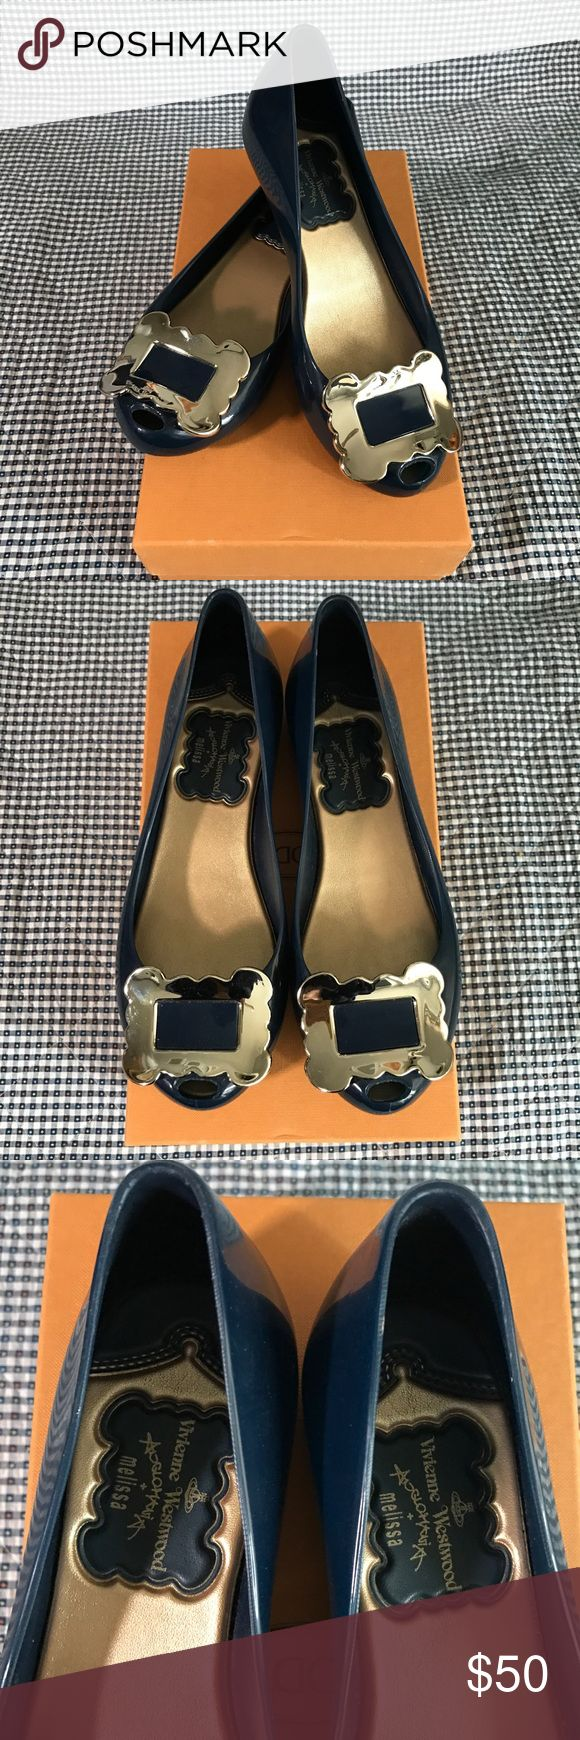 VIVIENNE WESTWOOD X MELISSA Jelly Flats (Navy) ✨Authentic✨This pair of Melissa Jelly Flats is designed by Vivienne Westwood. Definitely not your average flats! Very comfortable. With its unique buckle design, they are an attention-catcher 👀! SIZE: US 7 (true to size) CONDITION: Good! Signs of wear on the outer sole. This pair was purchased in London several years ago, no dust bag nor original box and tags. But guarantee authenticity! Vivienne Westwood Shoes Flats & Loafers